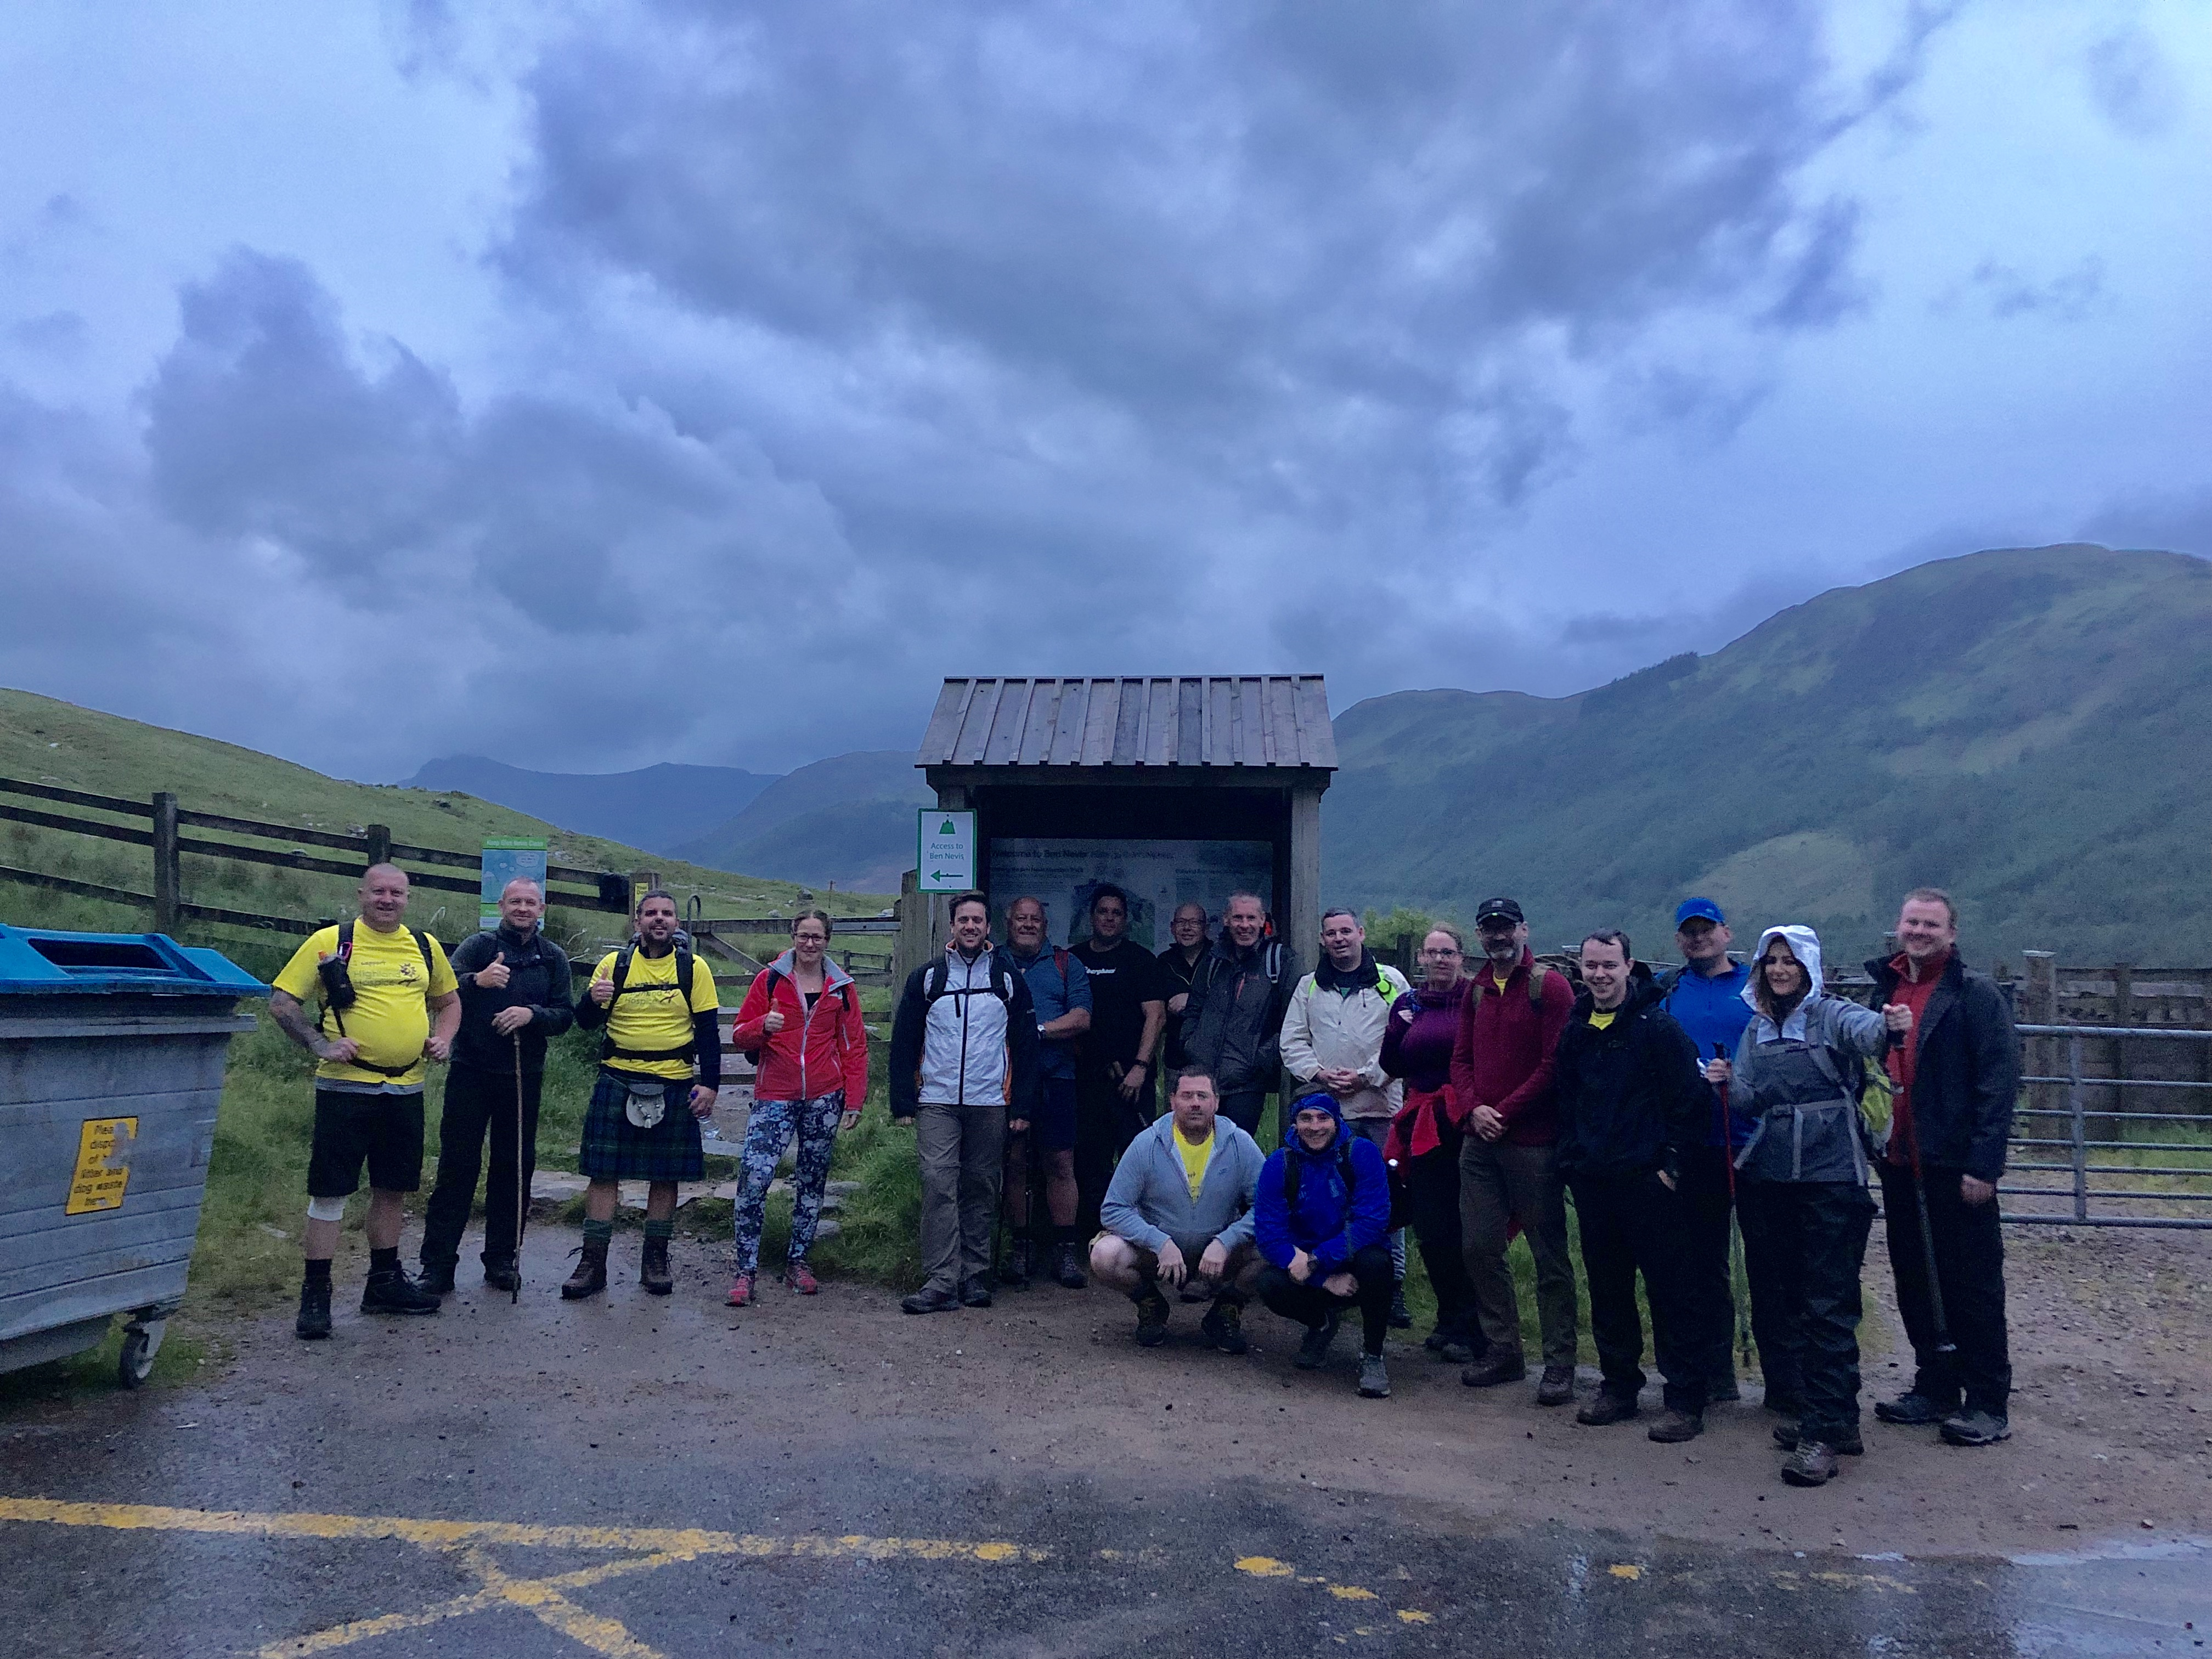 Staff from SSEN Transmission climbed Ben Nevis alongside colleagues from Balfour Beatty and TerraFirma in aid of local charities Lochaber Hope and Highland Hospice.